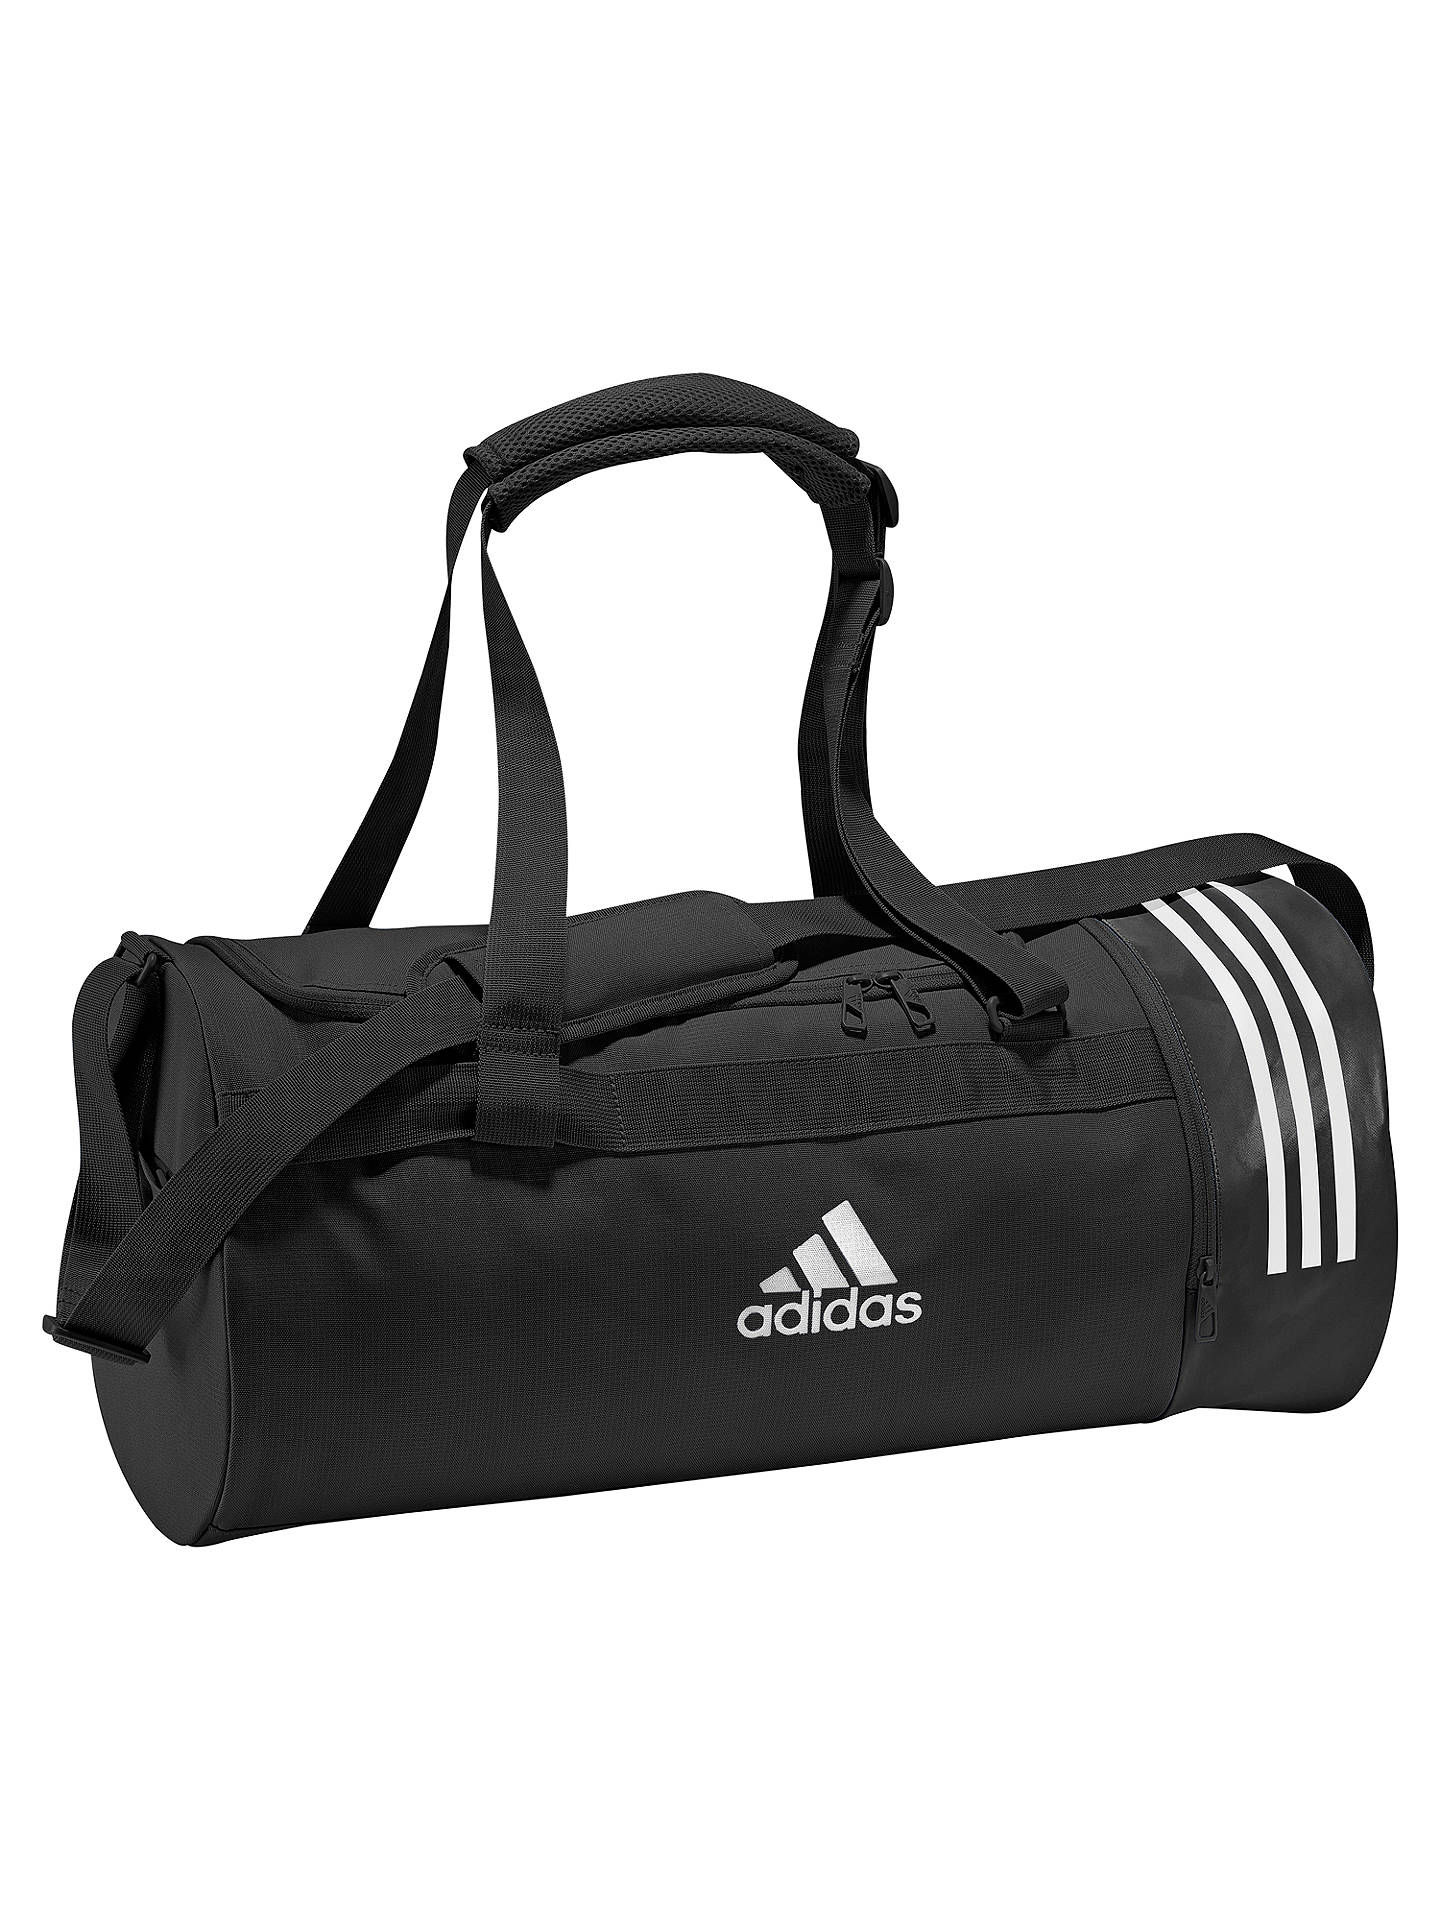 Buyadidas Convertible 3-Stripes Duffle Bag, Medium, Black Online at johnlewis.com